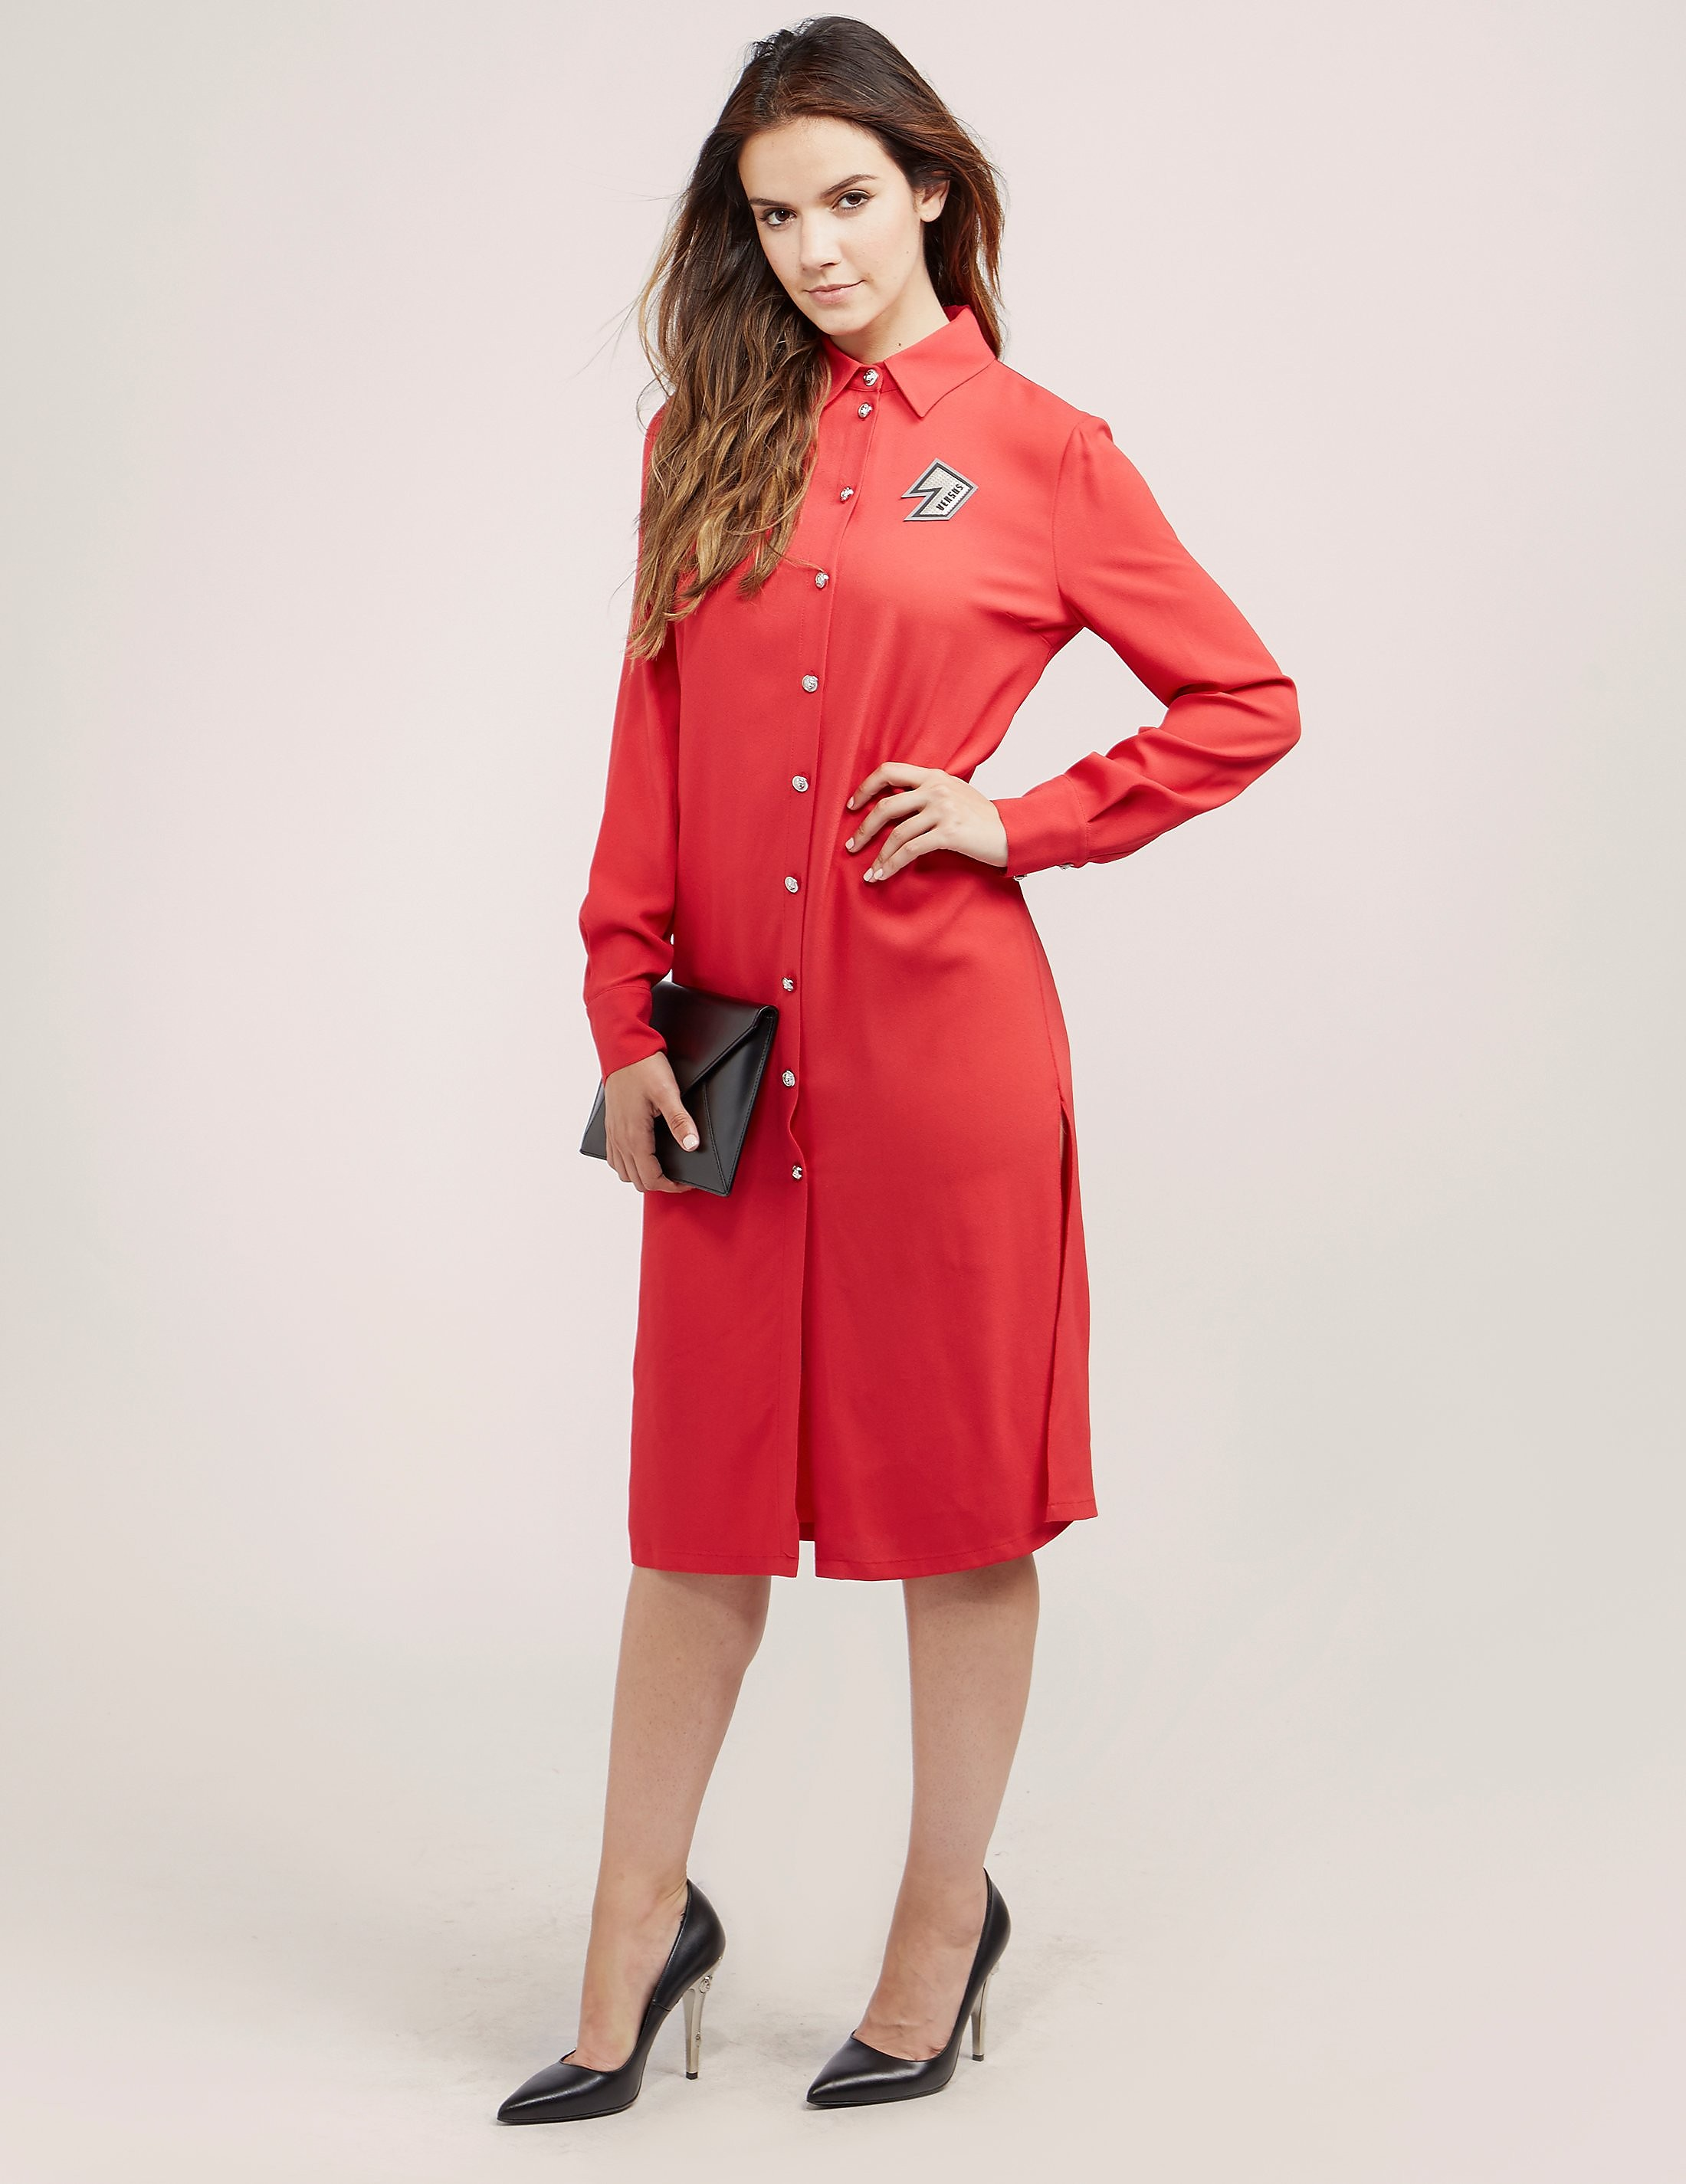 Versus Versace Shirt Dress